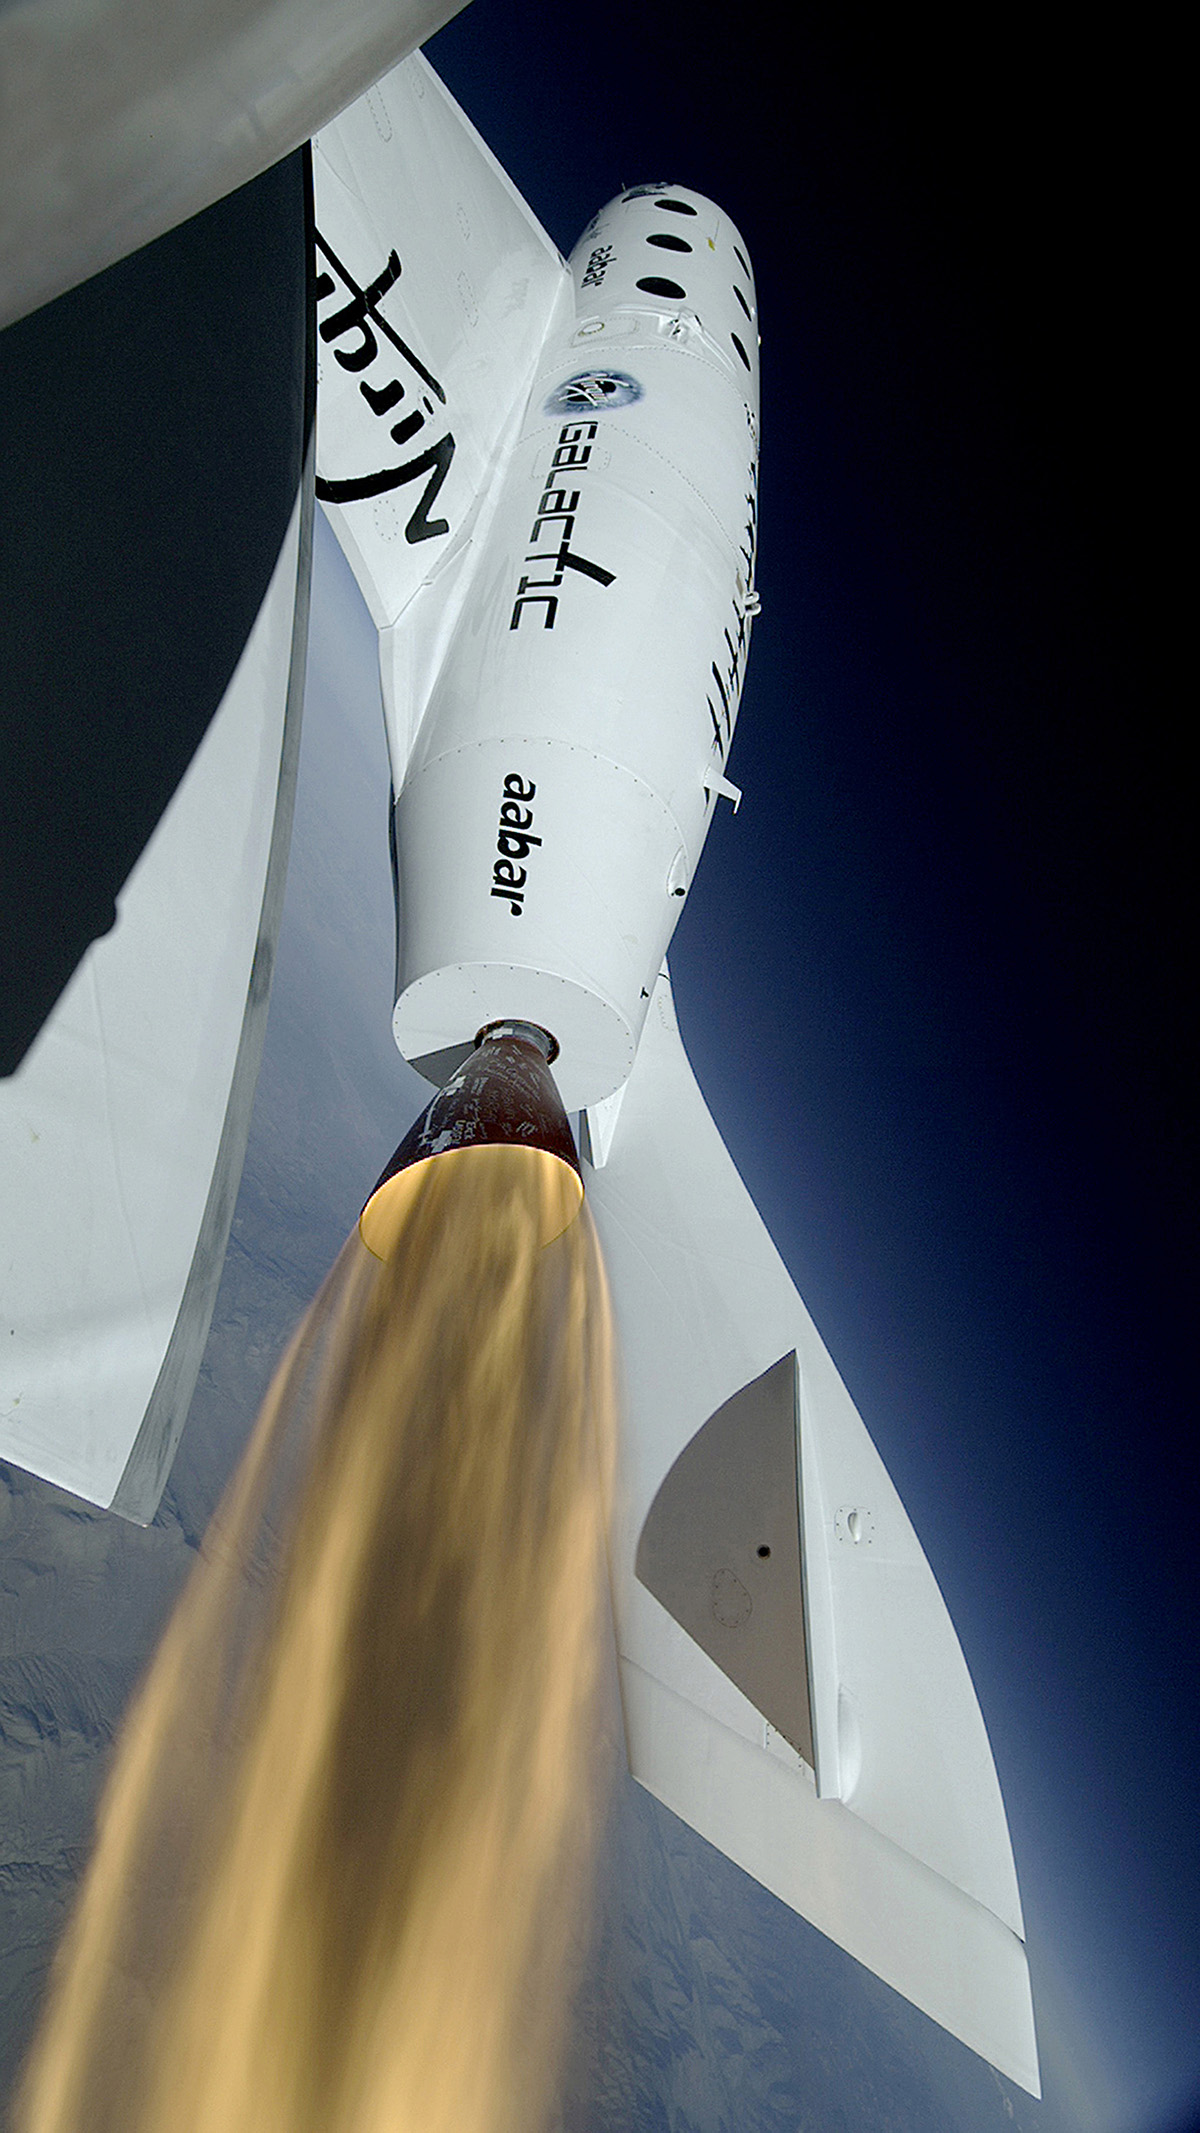 SpaceShipTwo Photo: Virgin Galactic